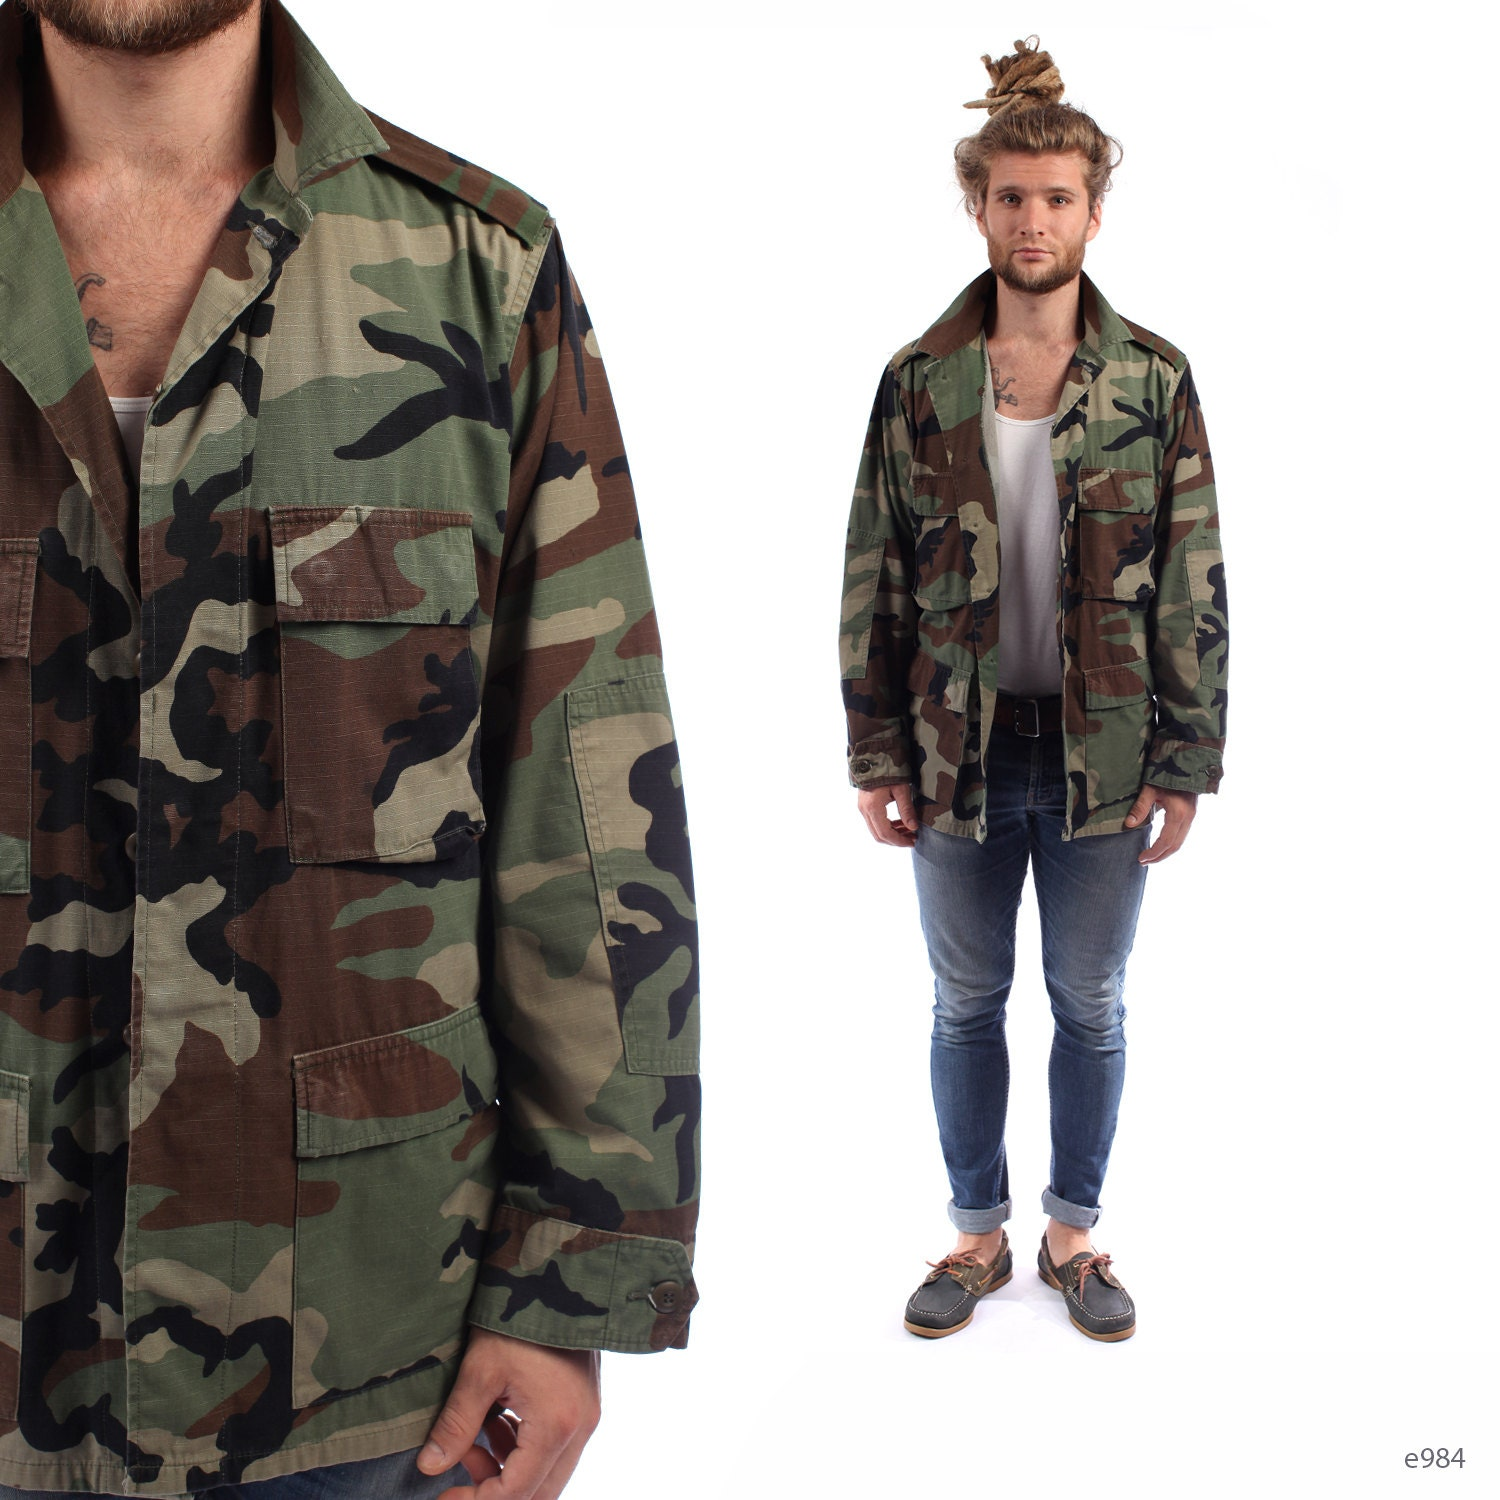 So if you are looking to buy a camouflage army combat jacket or a khaki army jacket to go hunting or hiking in, or a woollen greatcoat to brave the elements, you've found the right shop. Mens army jackets and genuine military coats for sale from Forces Uniform and Kit, the genuine army surplus clothing company, in the UK.